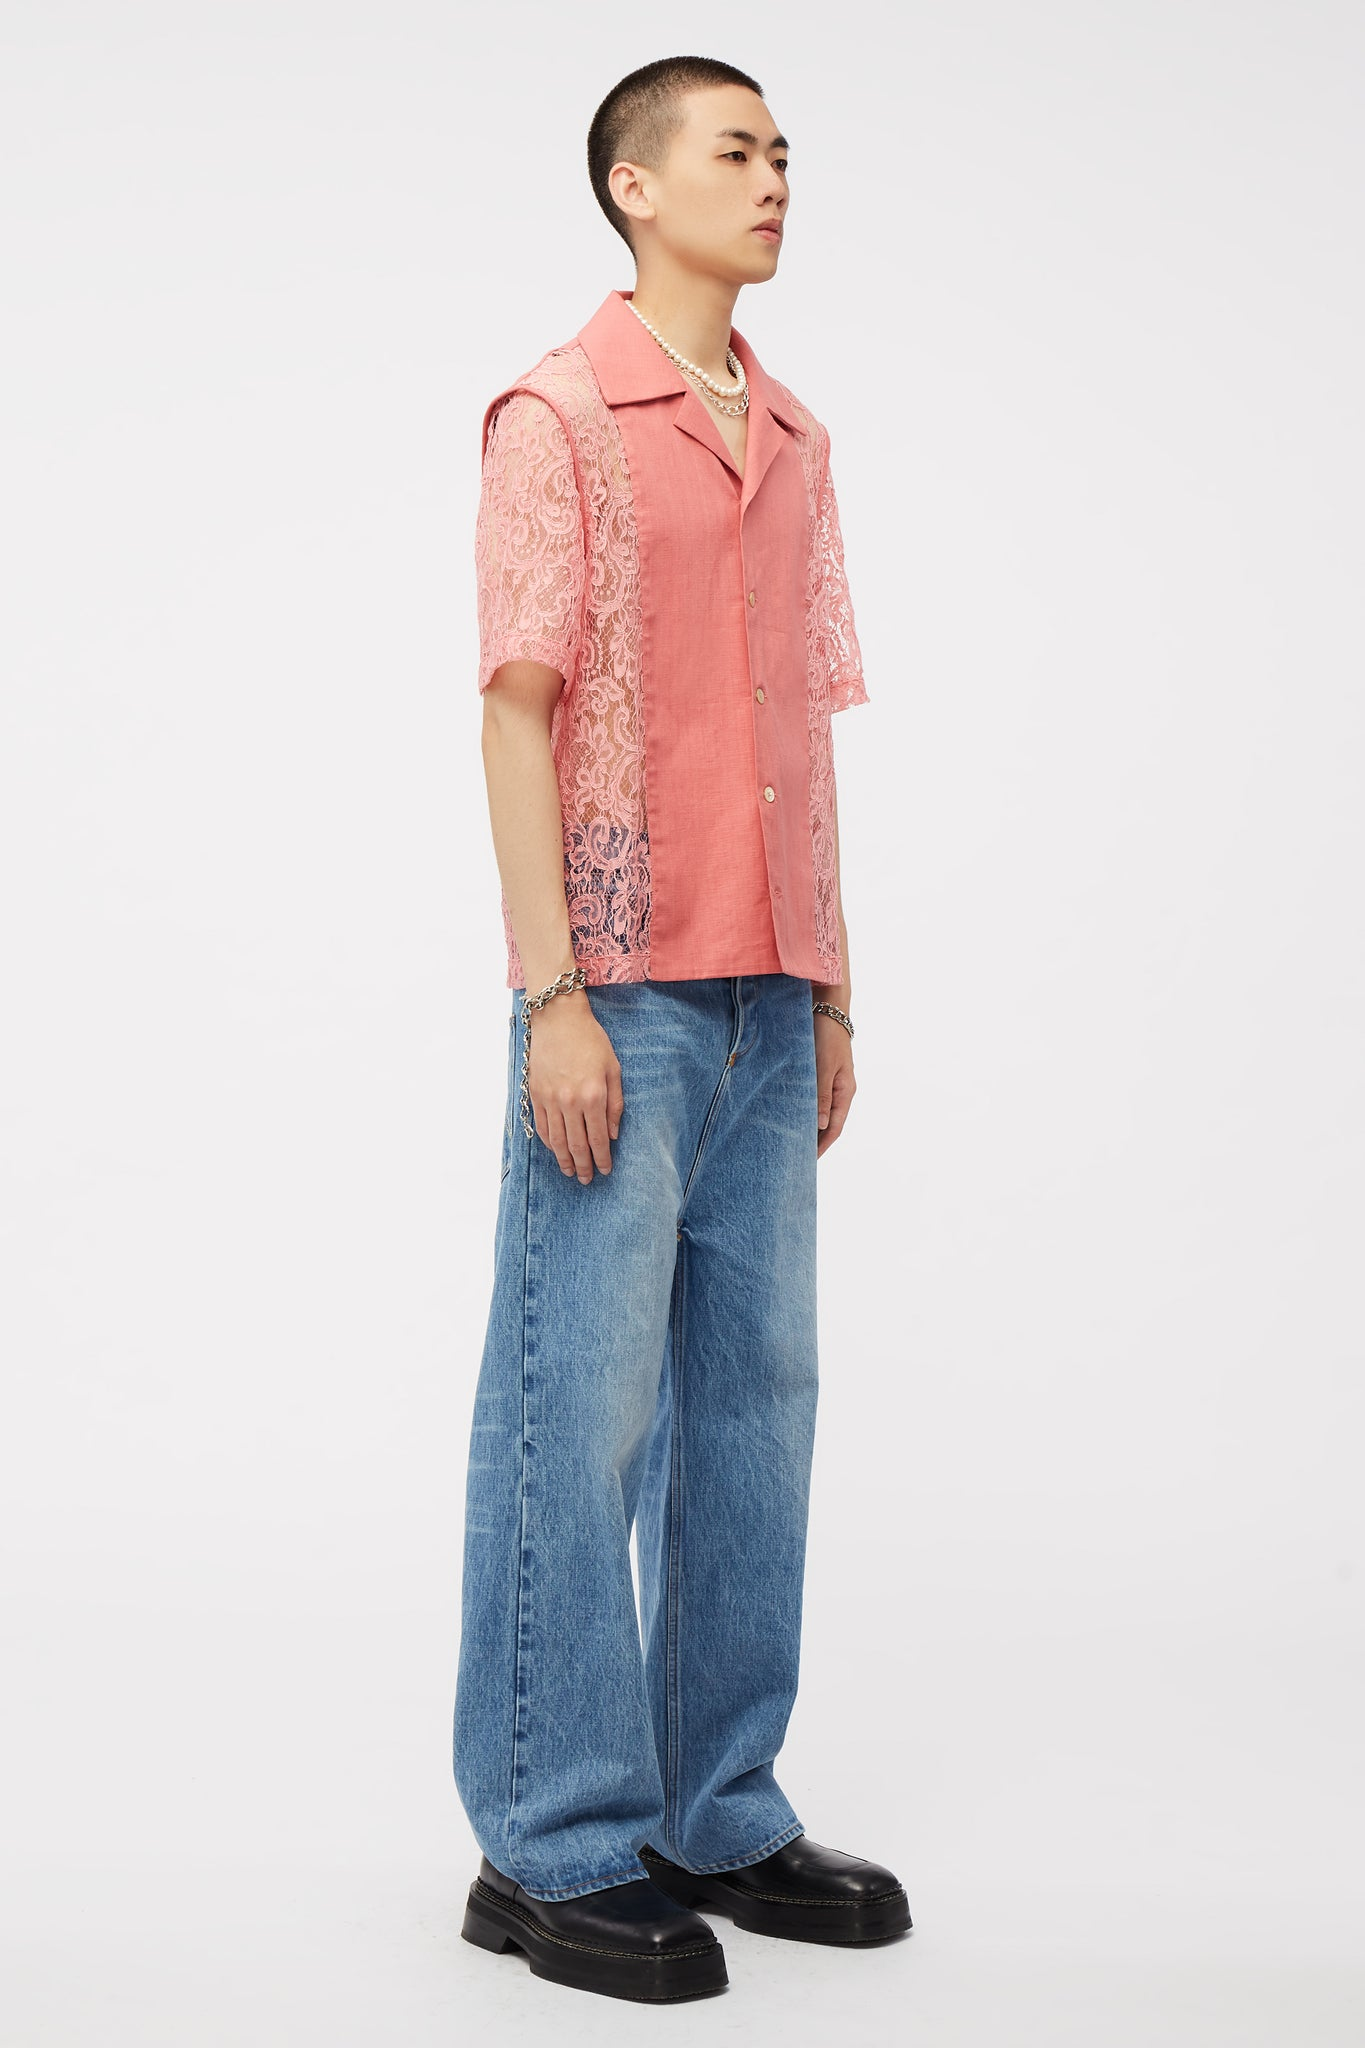 Narc Panlled Shirt Mellow Rose Lace